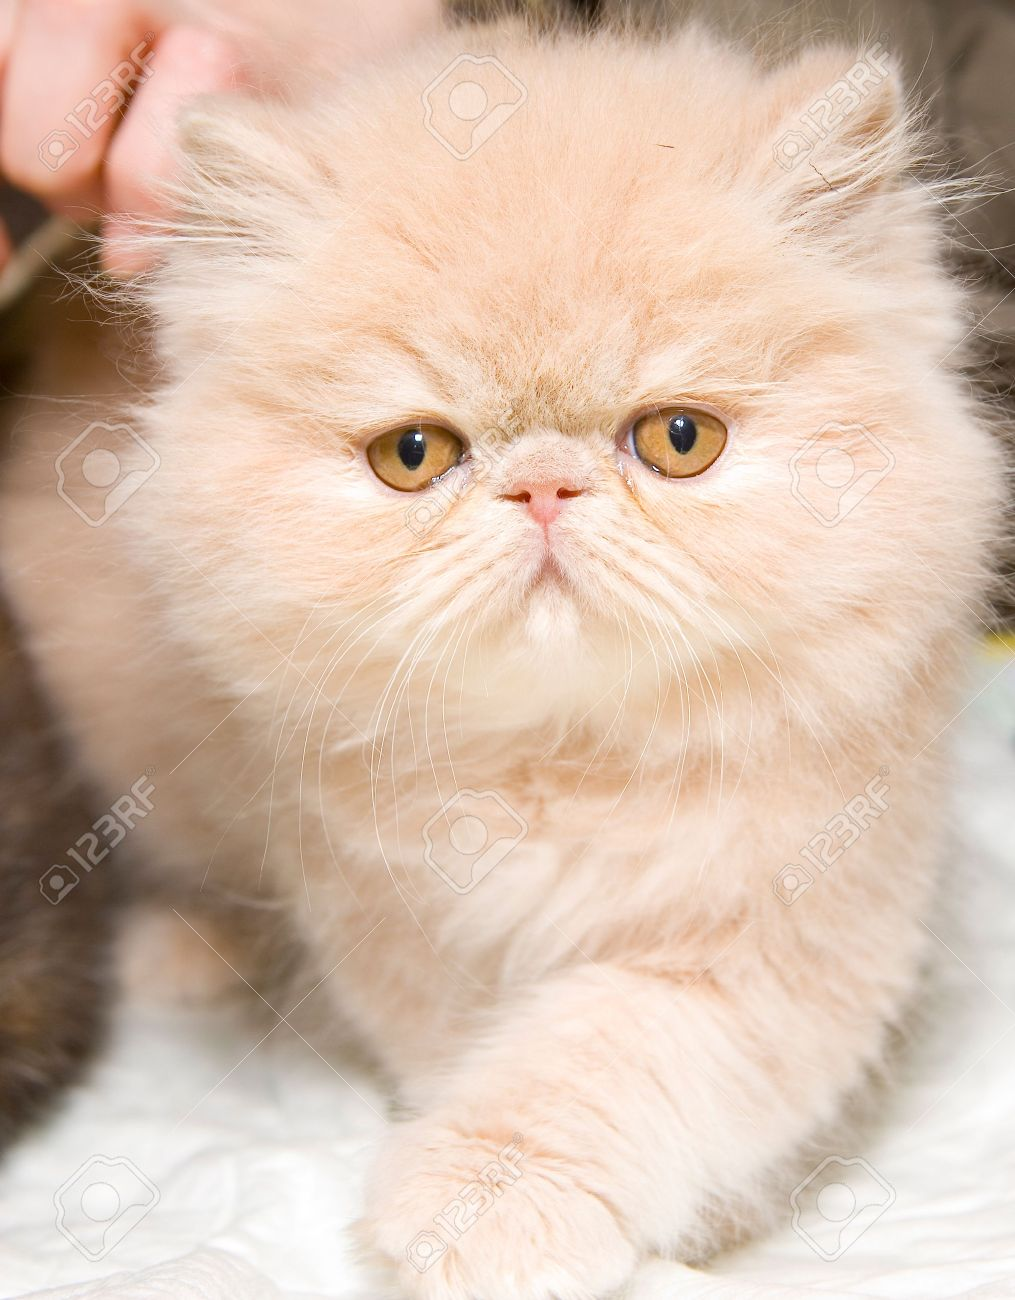 Cute Fluffy Persian Kitten Stock Picture And Royalty Free